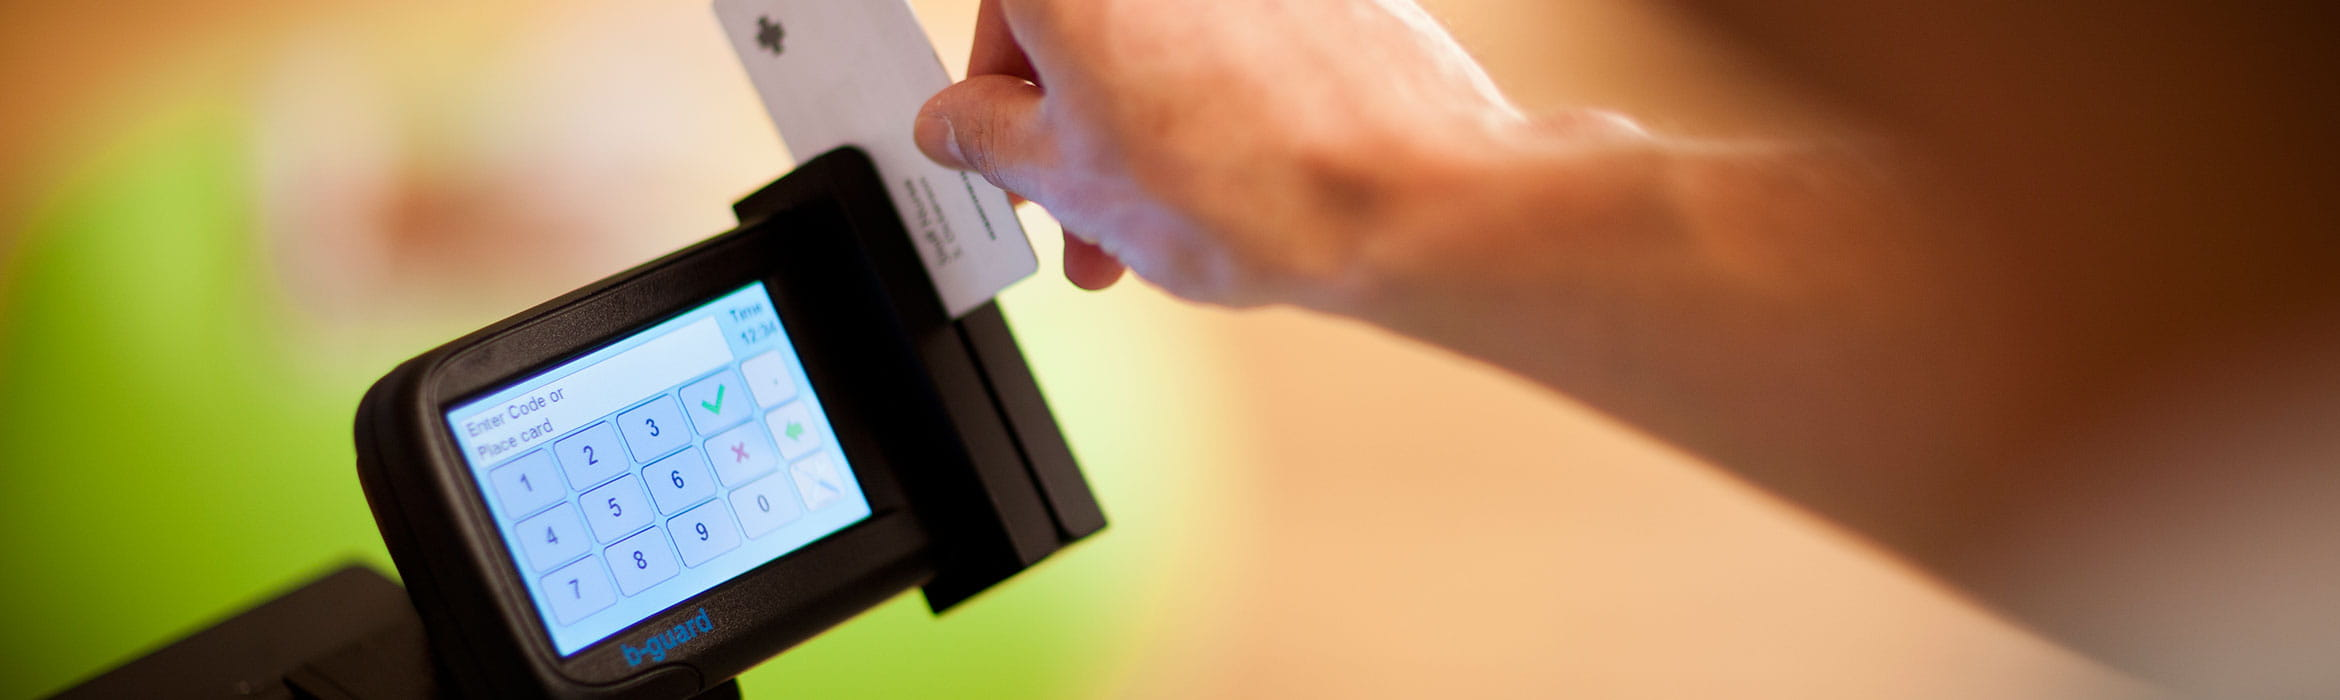 Person using an ID card reader on a Brother printer